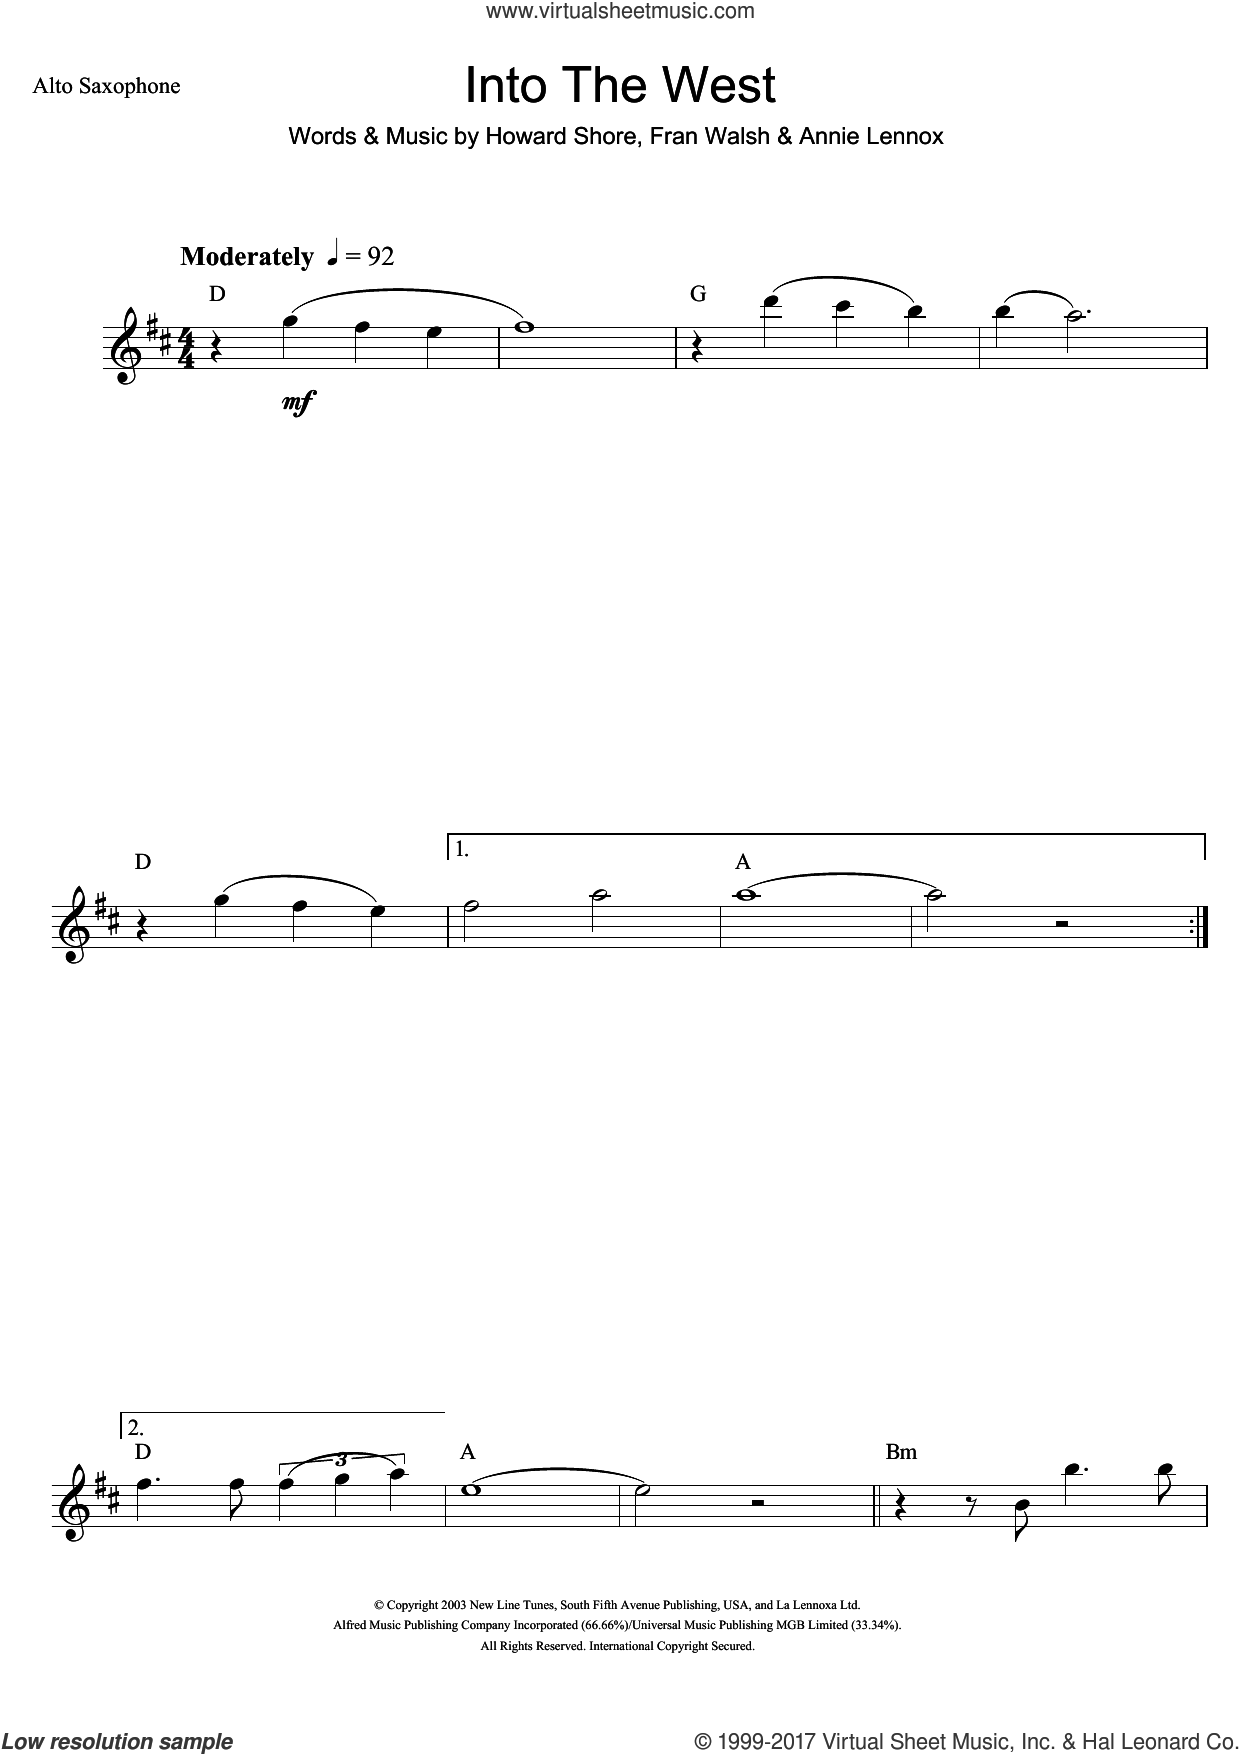 Into The West (from The Lord Of The Rings: The Return Of The King) sheet music for alto saxophone solo by Annie Lennox, Fran Walsh and Howard Shore, intermediate skill level